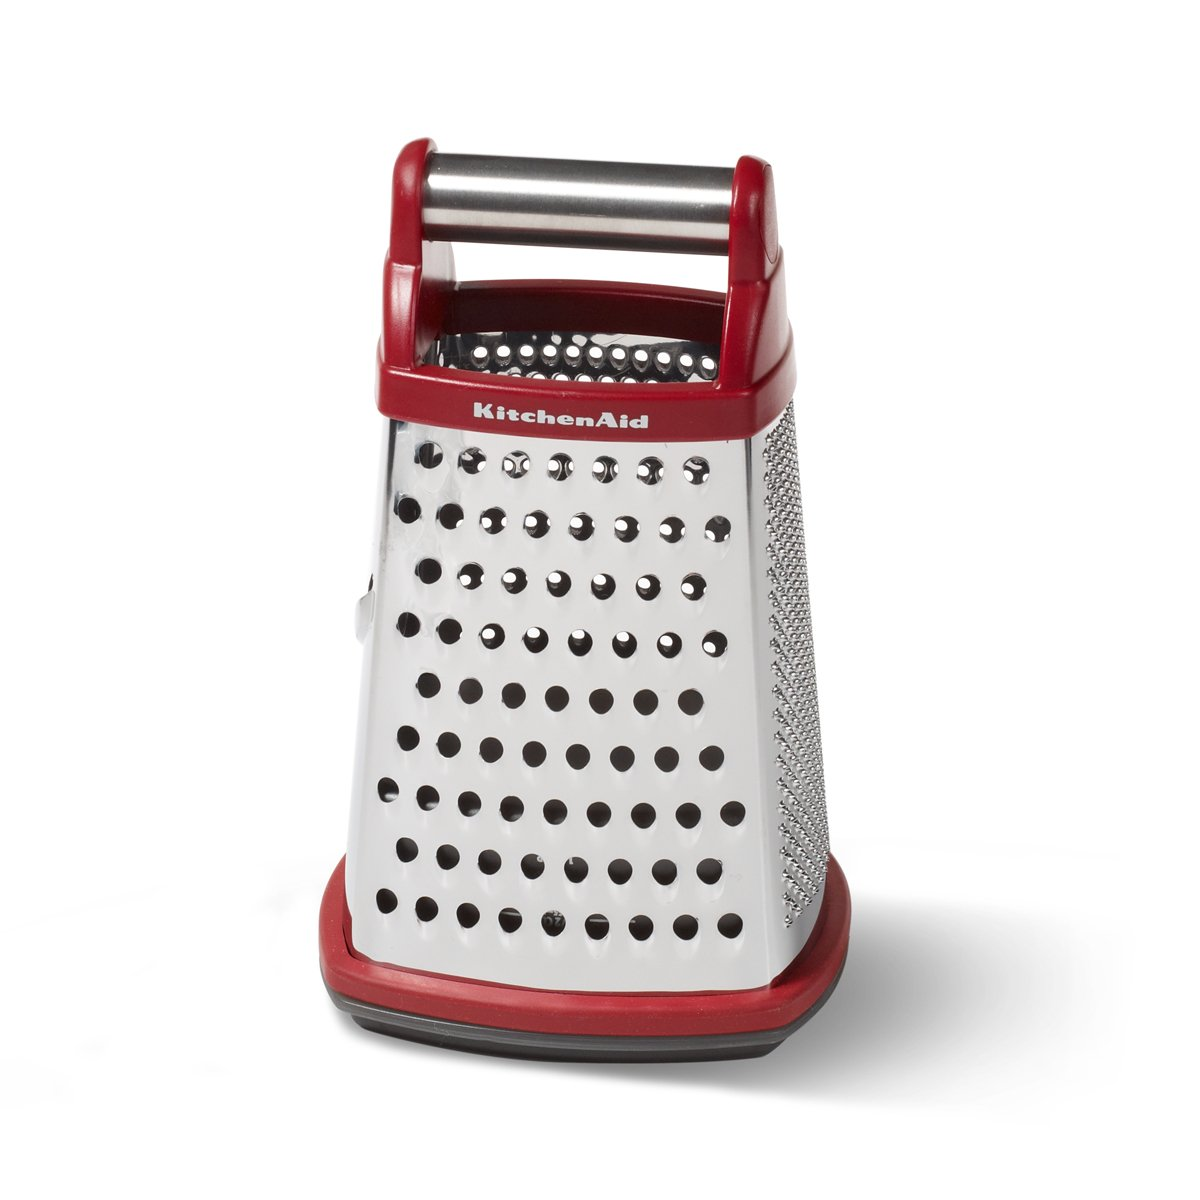 Marvelous Box Grater Cheese Vegetable Shredder Kitchen Stainless Steel Red Cooking New